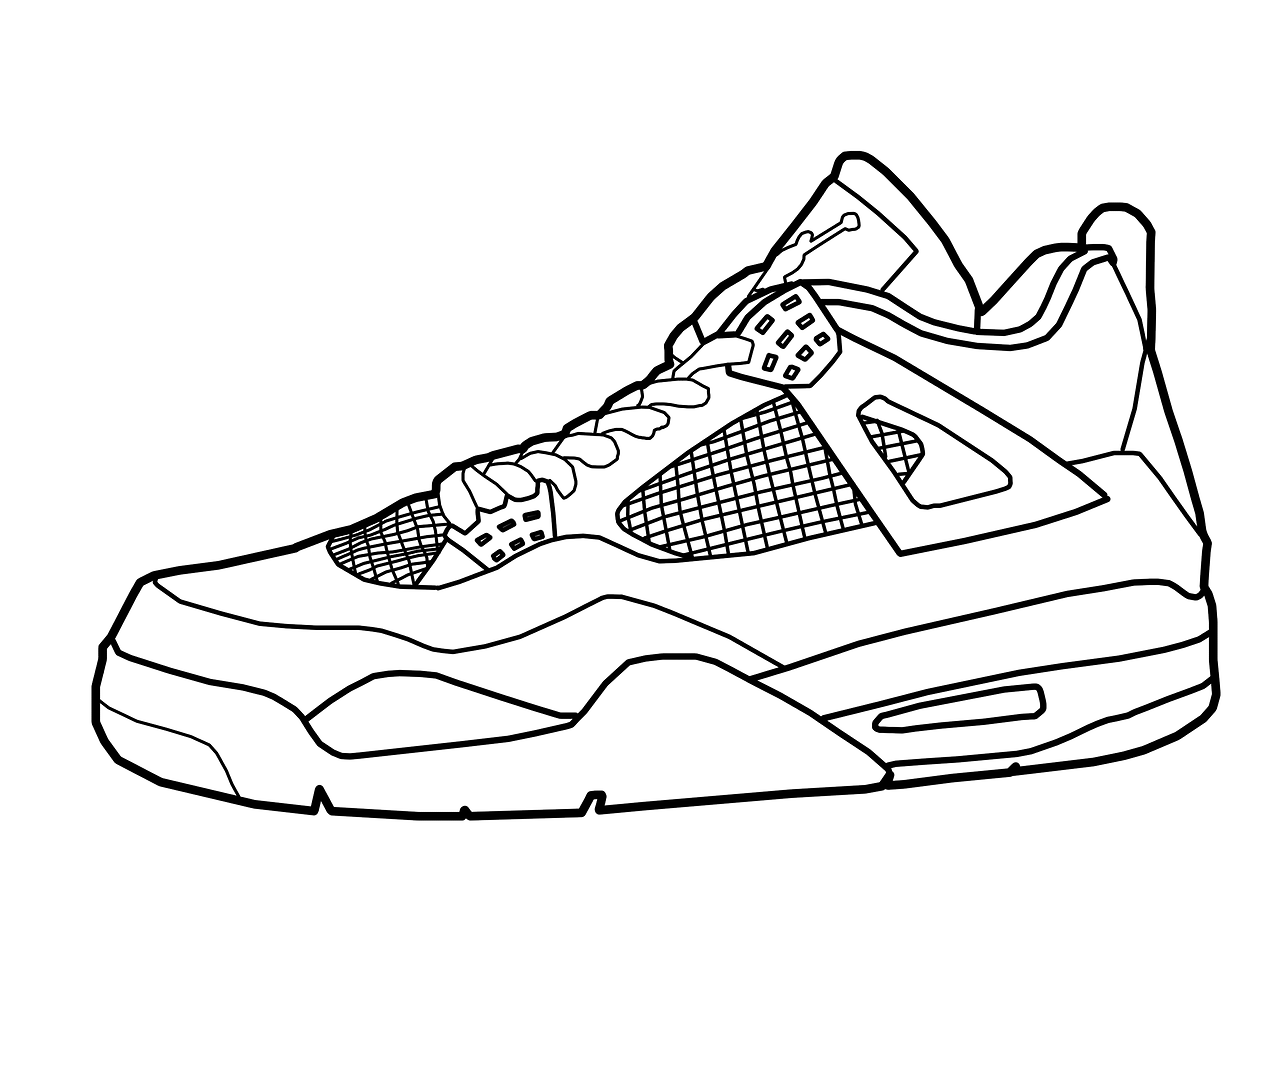 10 Pics of Pair Of Tennis Shoes Coloring Pages - Pairs of Shoes ...